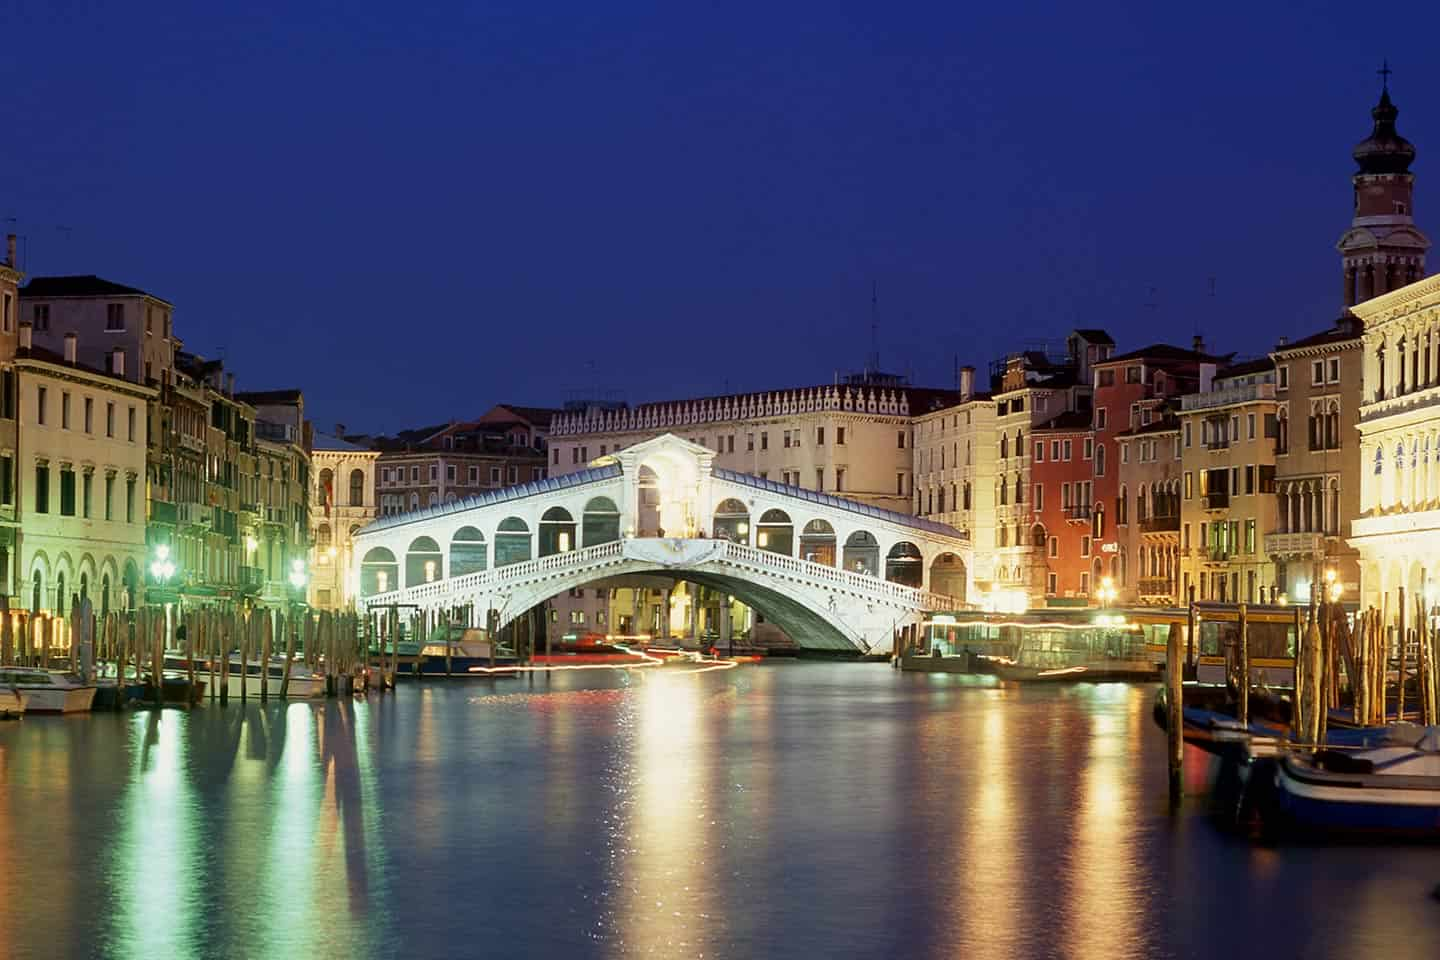 Image of the Rialto Bridge Venice at night